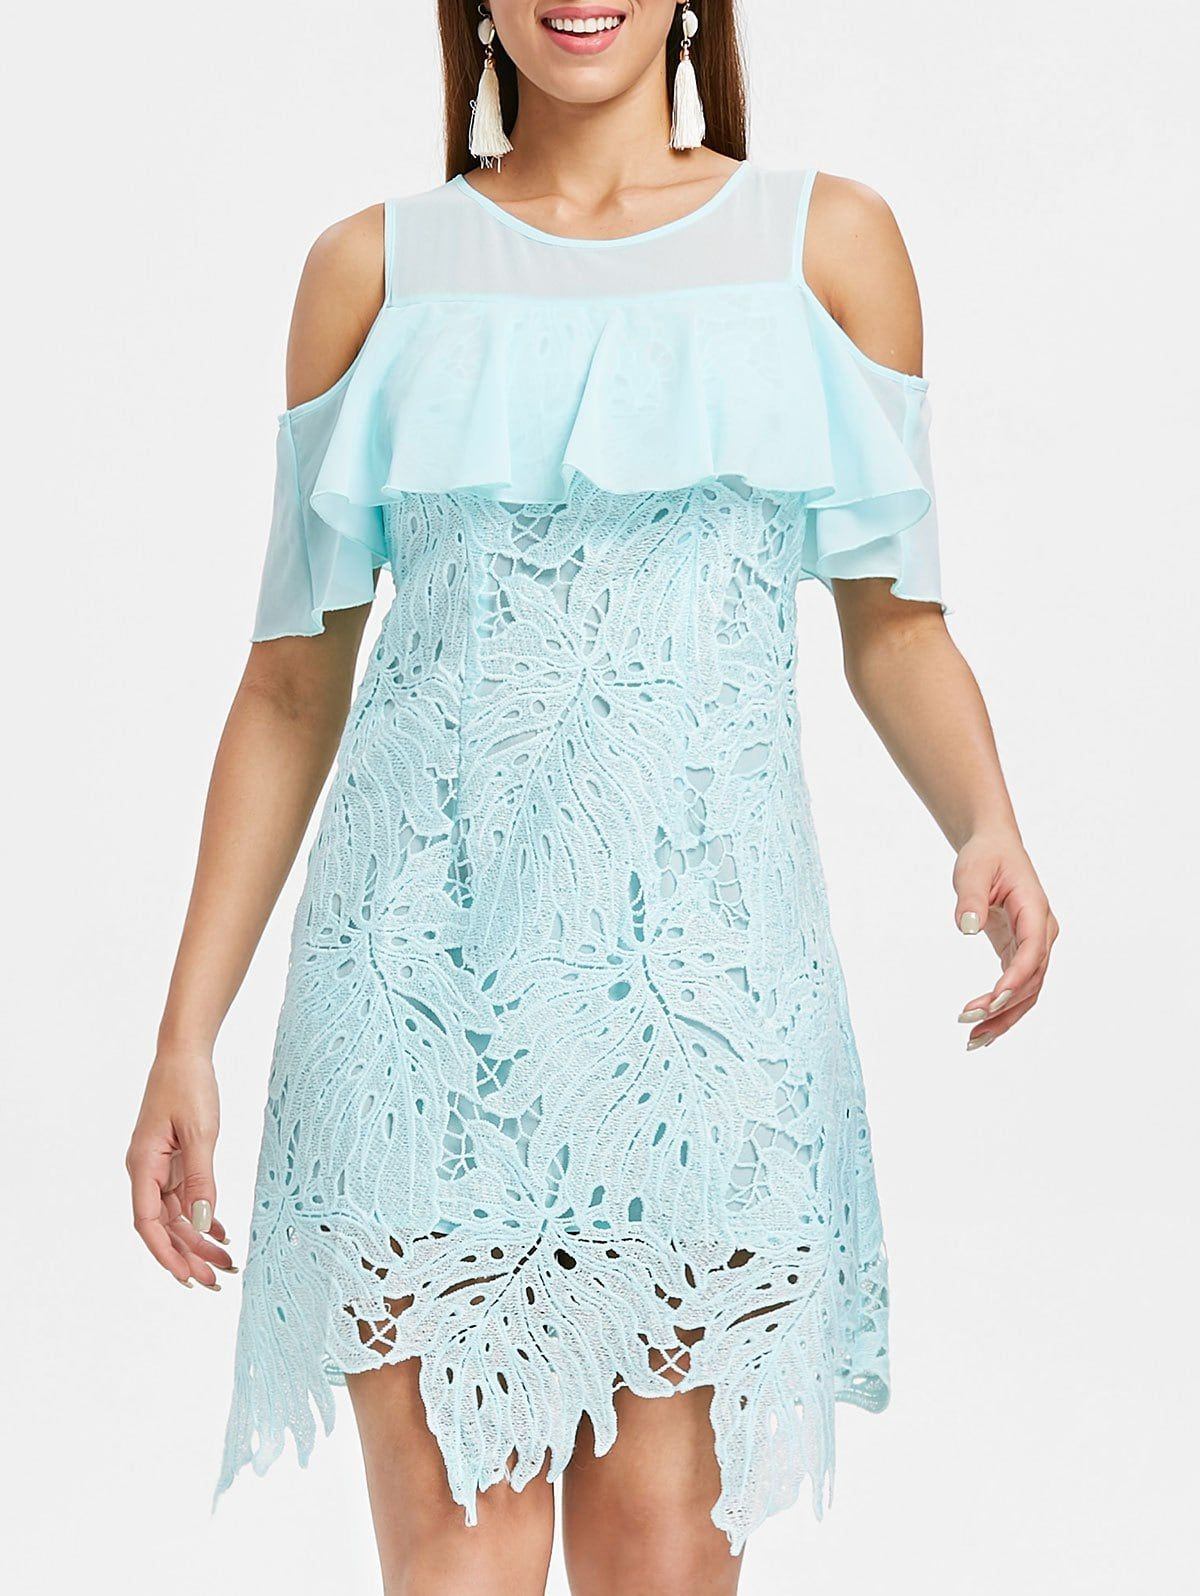 c2a59a475f0 Cold Shoulder Crochet Leaf Lace Dress Trendy dress Use Code  RGBF1 Get 25%  OFF Discount!